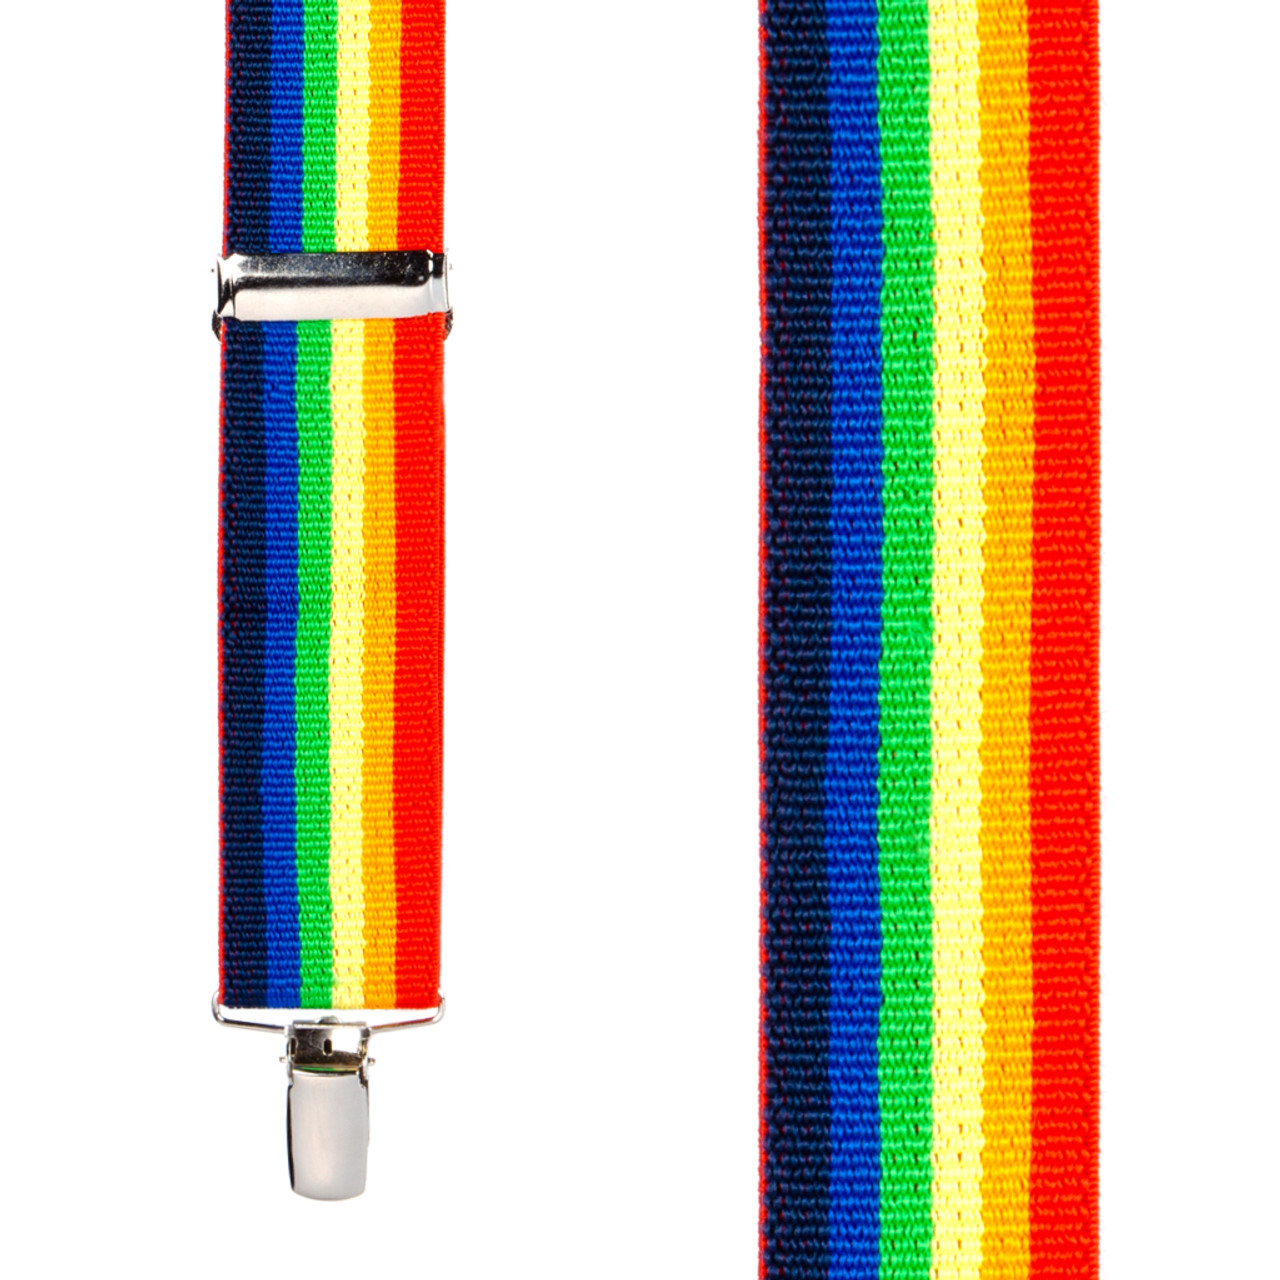 858cb70d4 Front View - Rainbow Striped Clip Suspenders - 1.5 Inch Wide